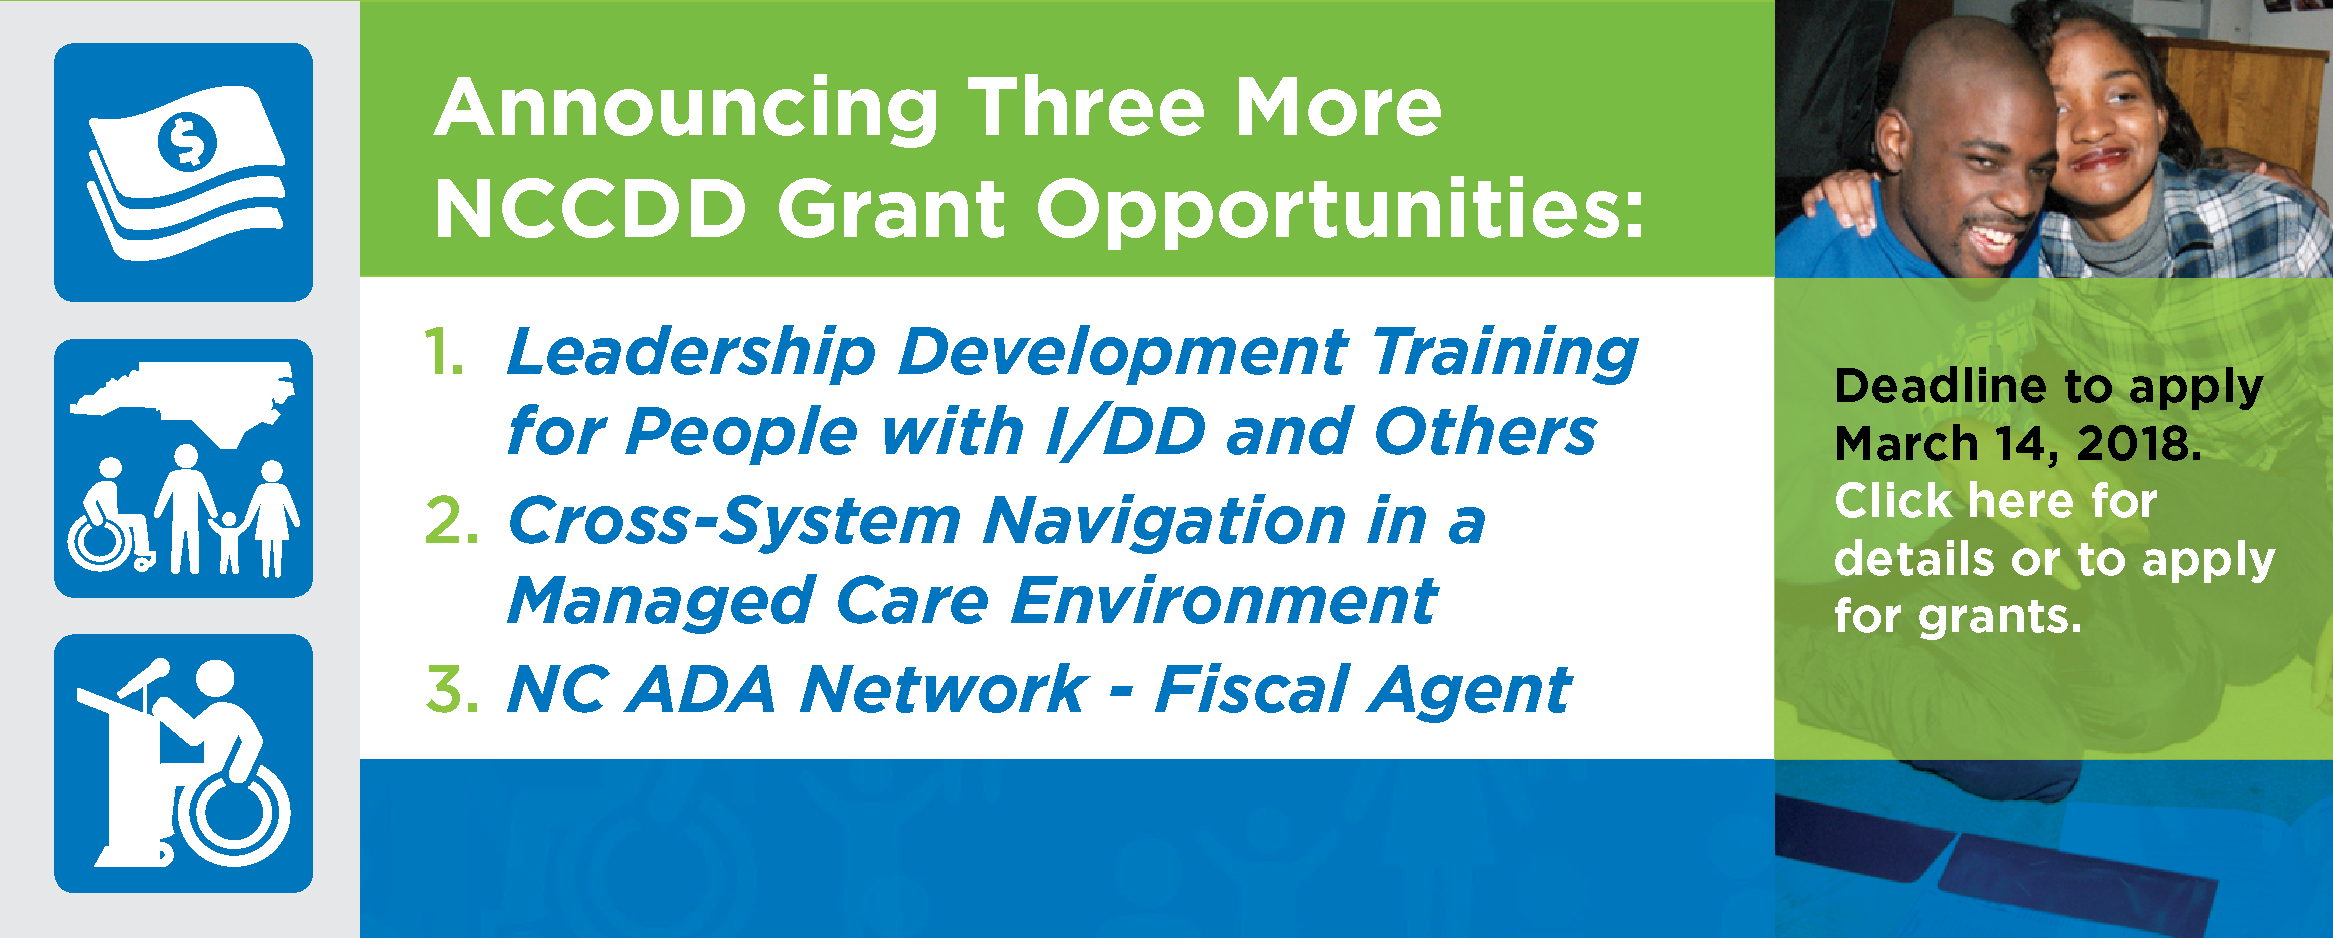 NCCDD Announces Three More Grant Opportunities: Leadership Development Training for People with I/DD and Others; 2. Cross-System Navigation in a Managed Care Environment; 3. NC ADA Network - Fiscal Agent; Click here for details.